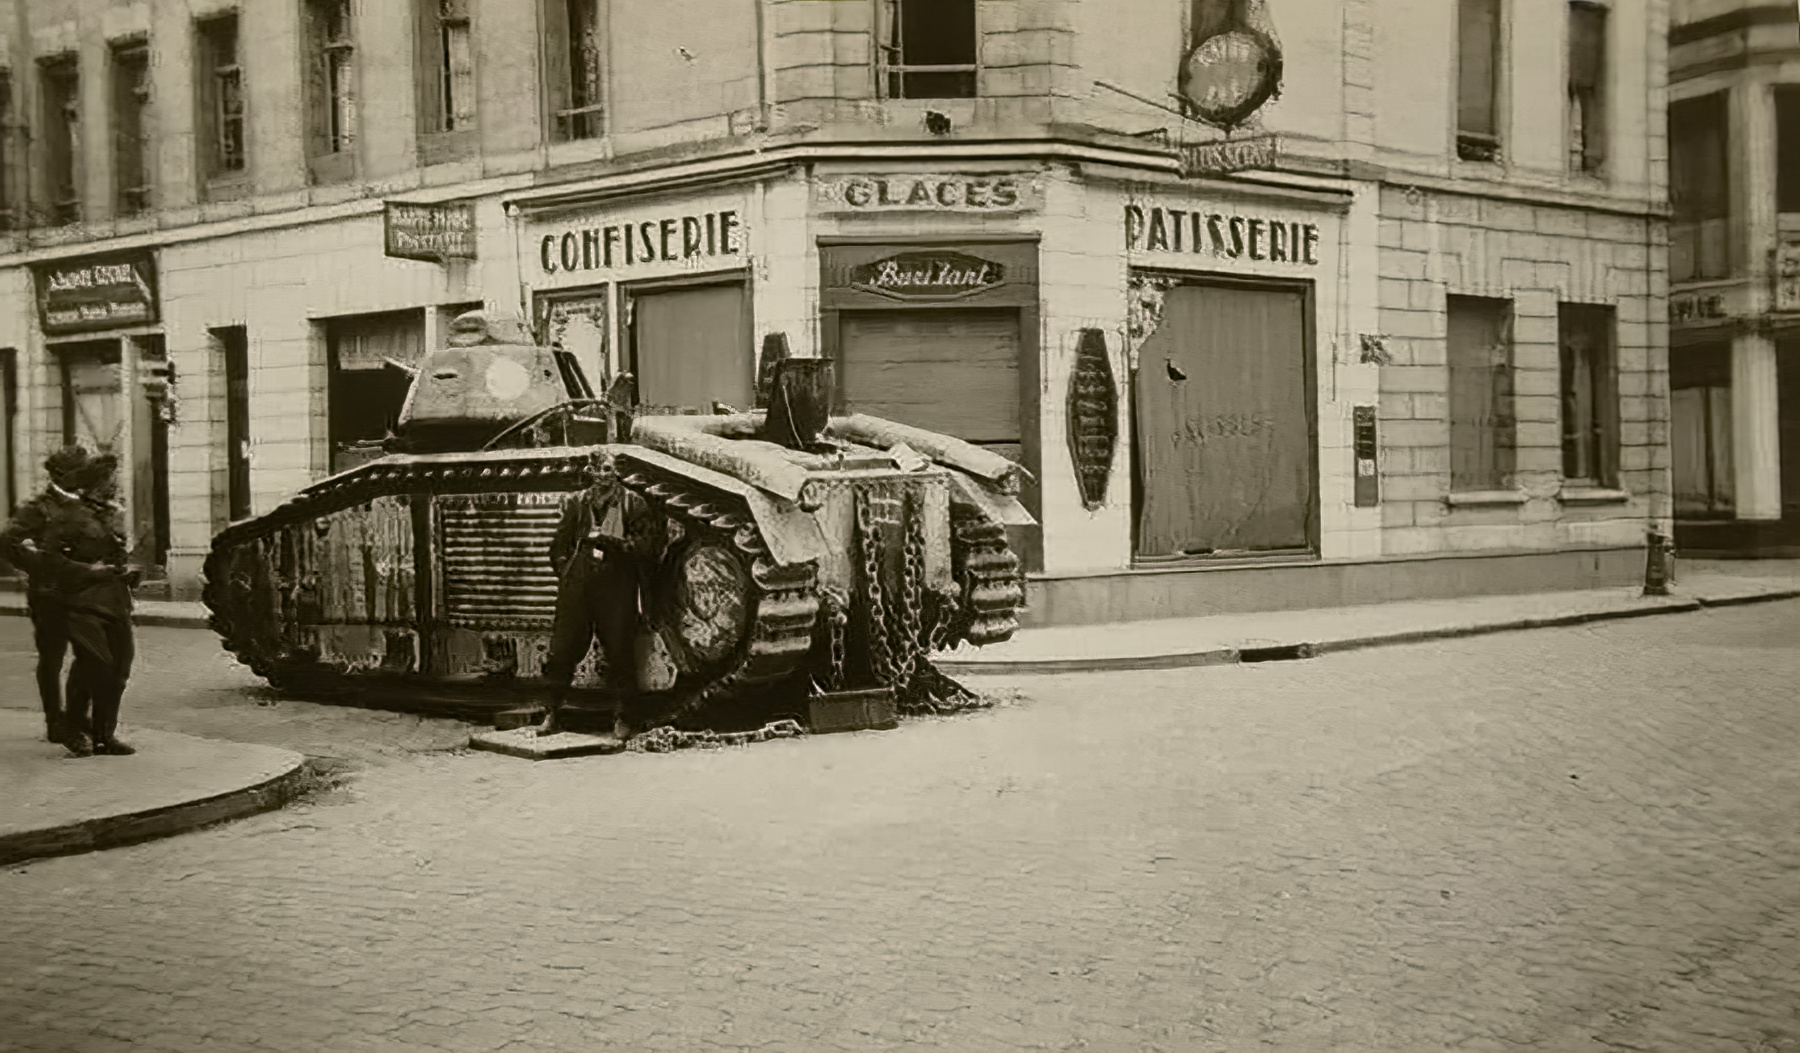 French Army Renault Char B1bis captured during the battle of France 1940 ebay 02